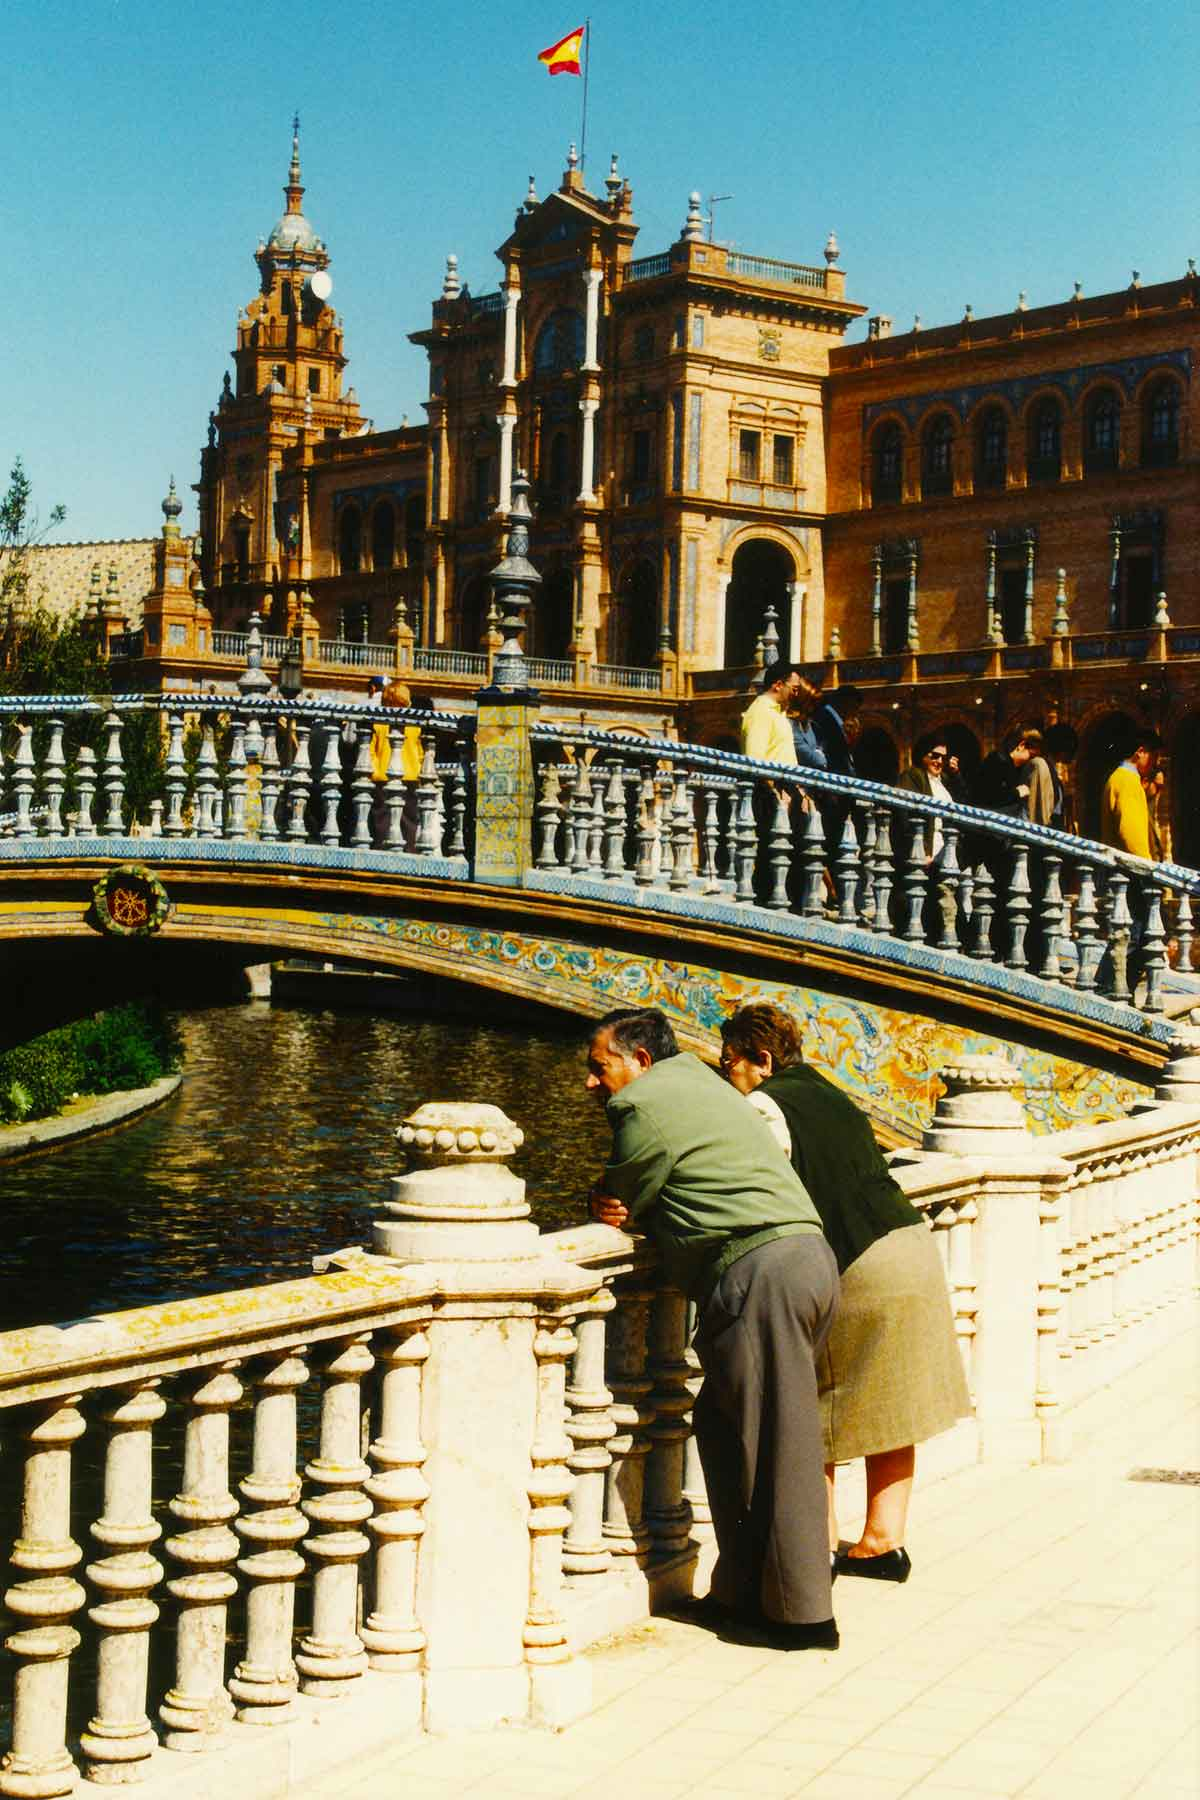 Plaza de Espana - Seville Spain - Steven Andrew Martin - Study Abroad Photo Journal